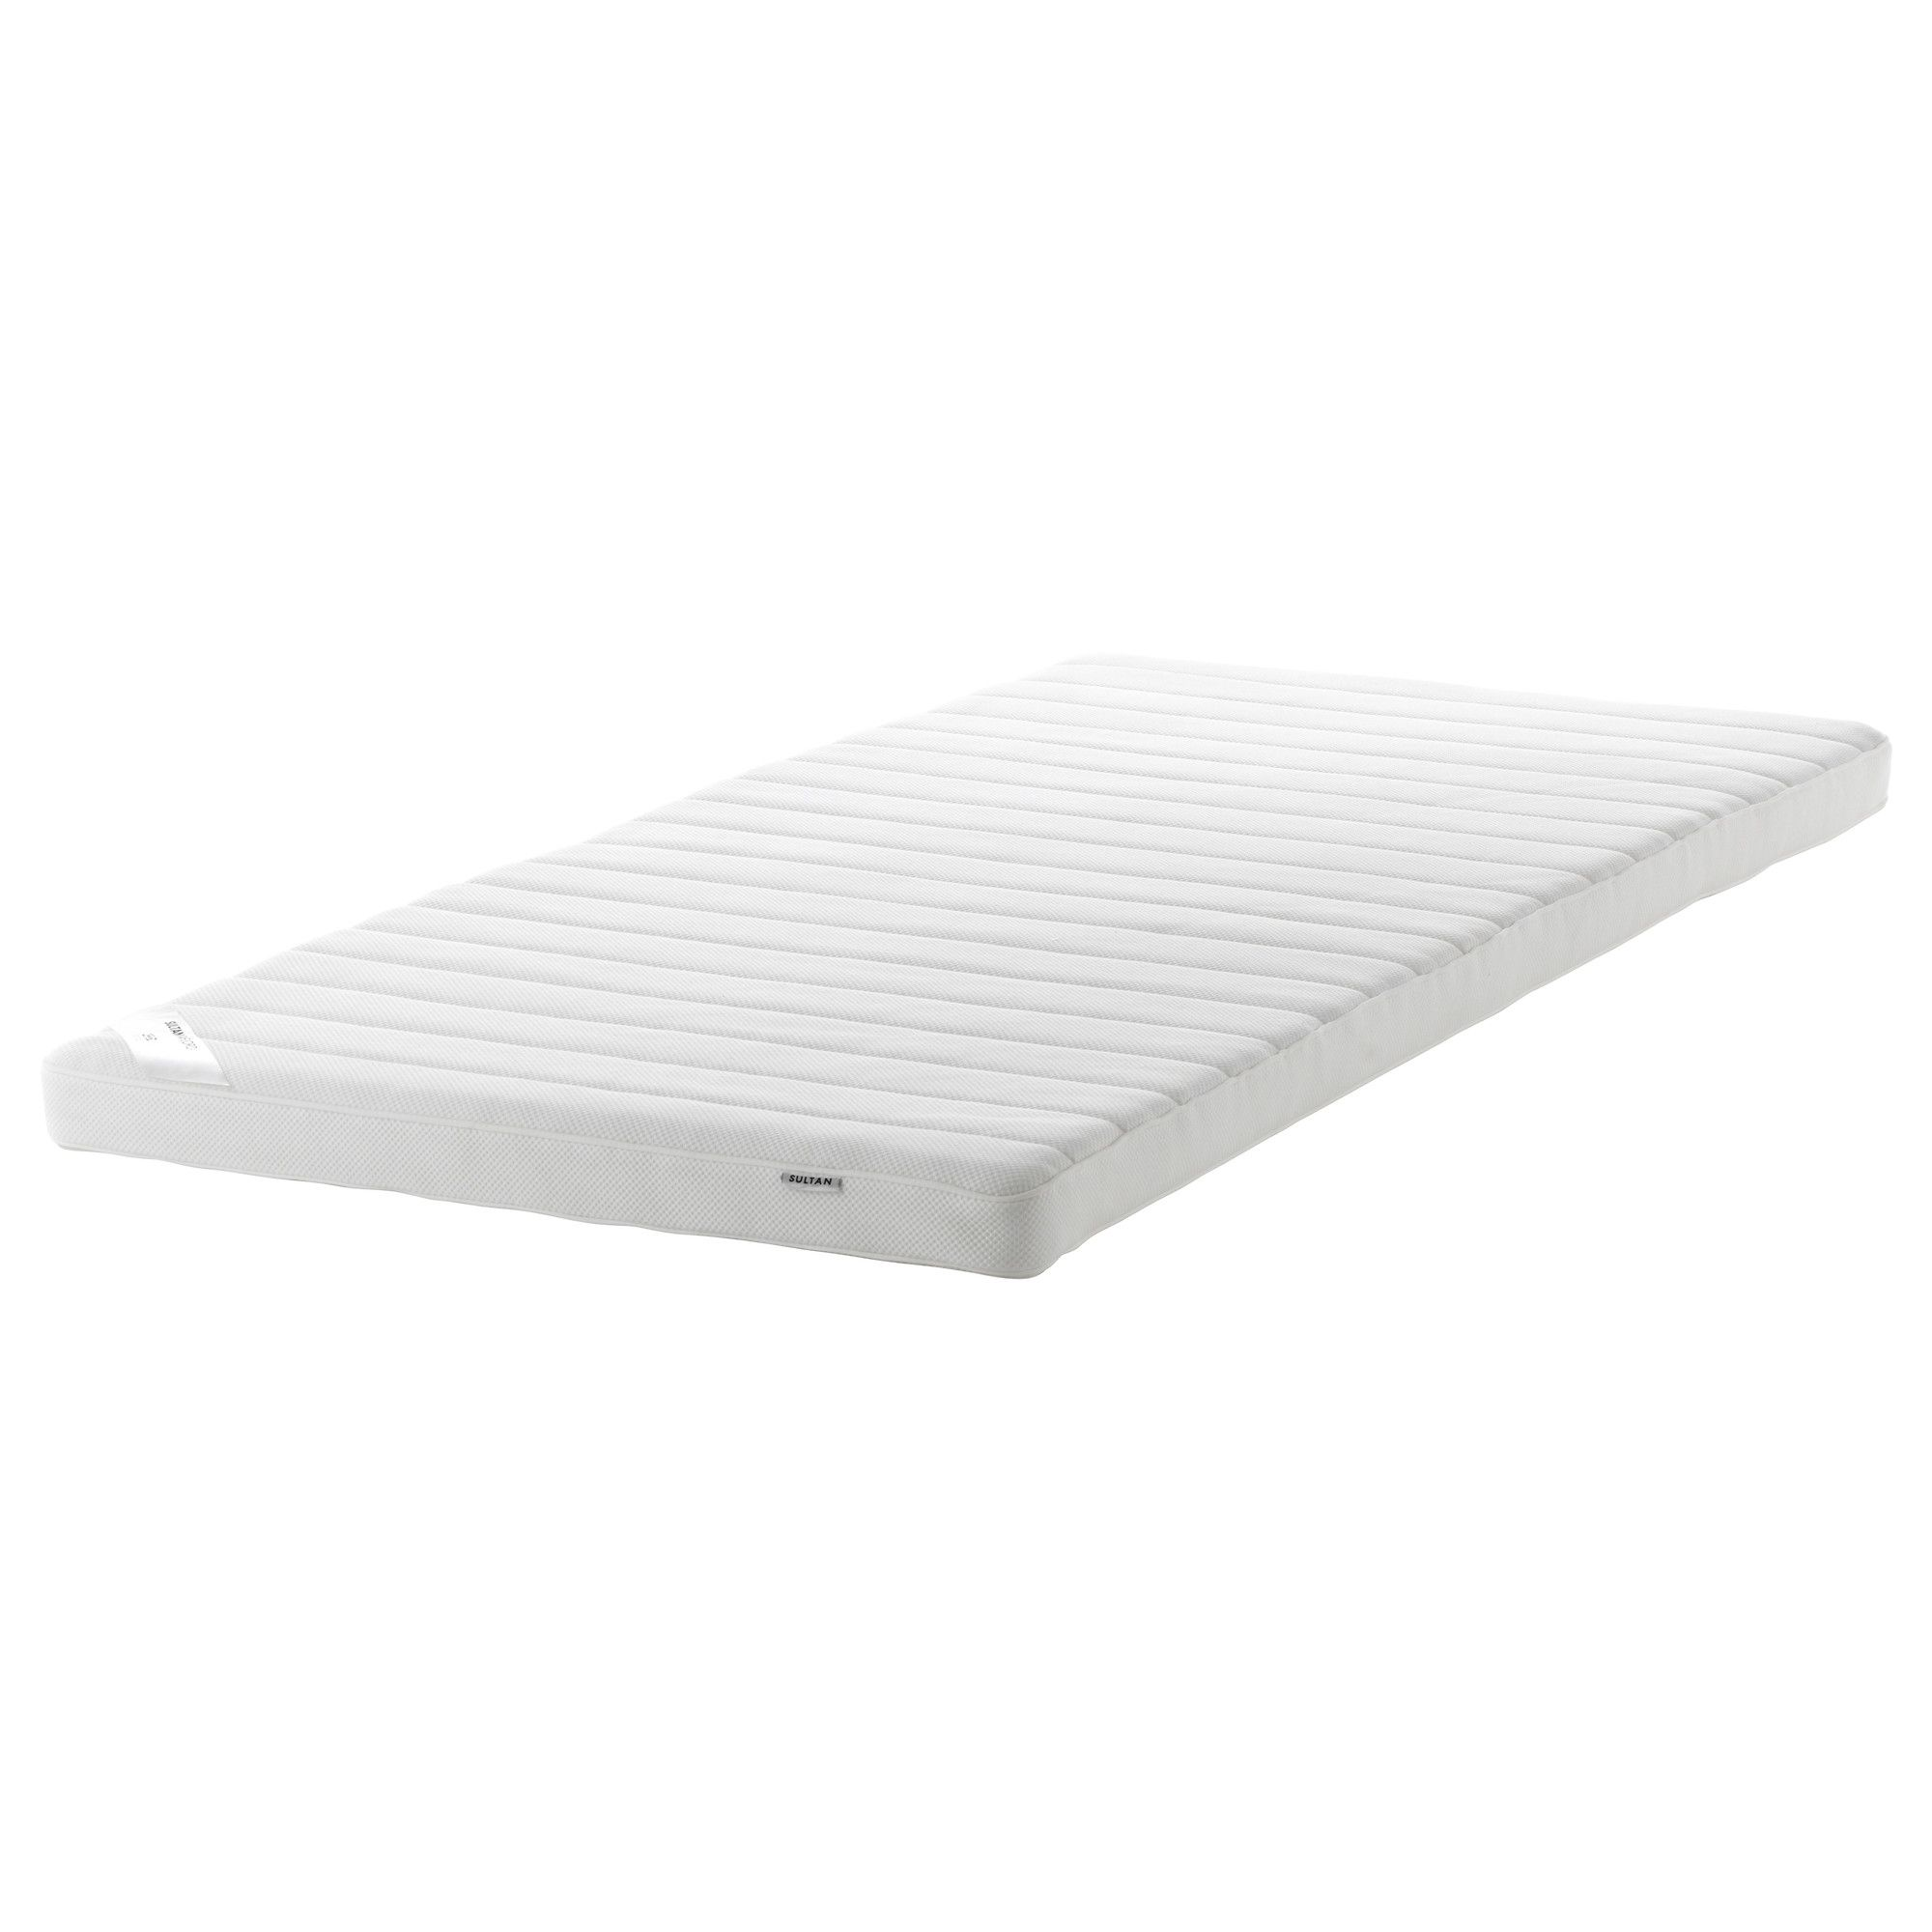 sultan tafjord pillowtop twin ikea great to throw in the back of the